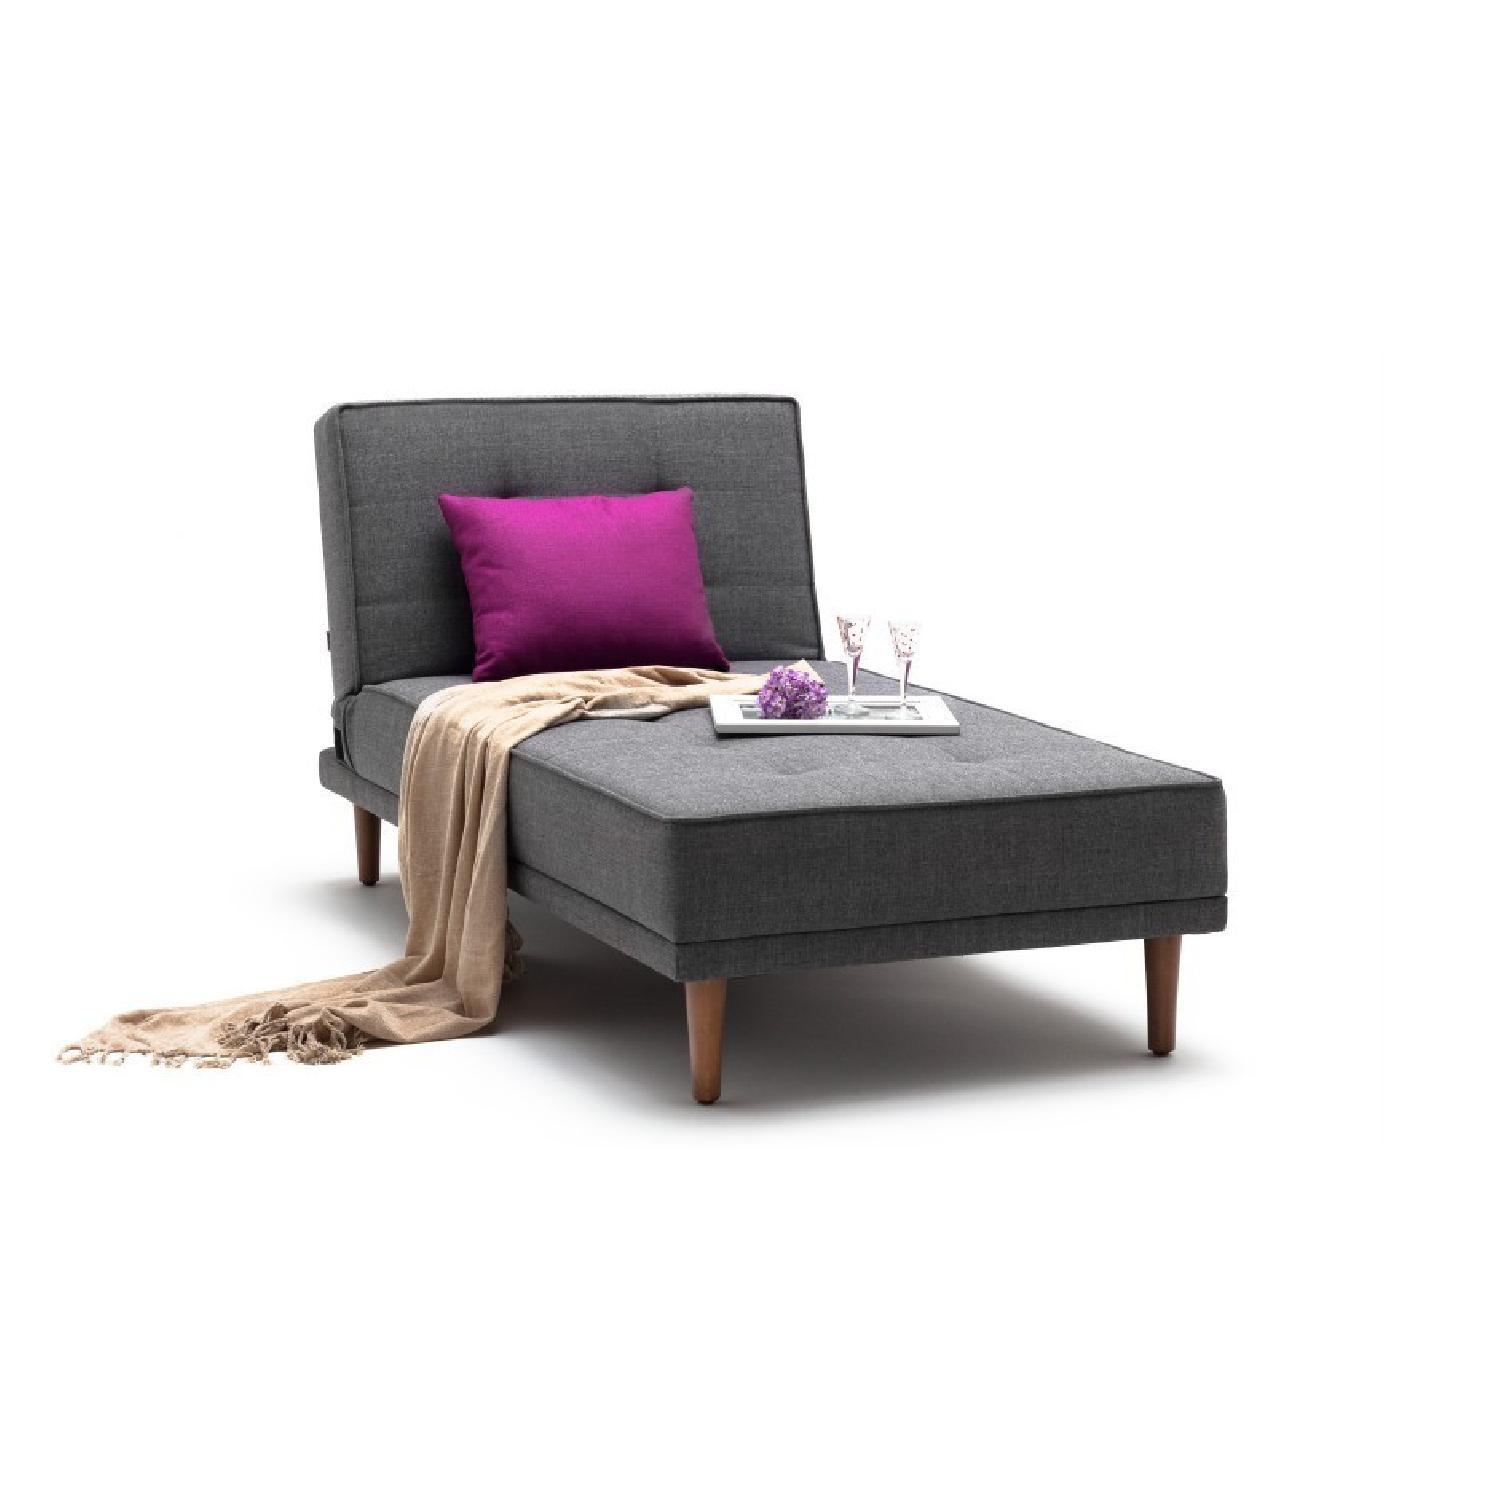 Lazzoni L Sectional Sofa Bed in Grey